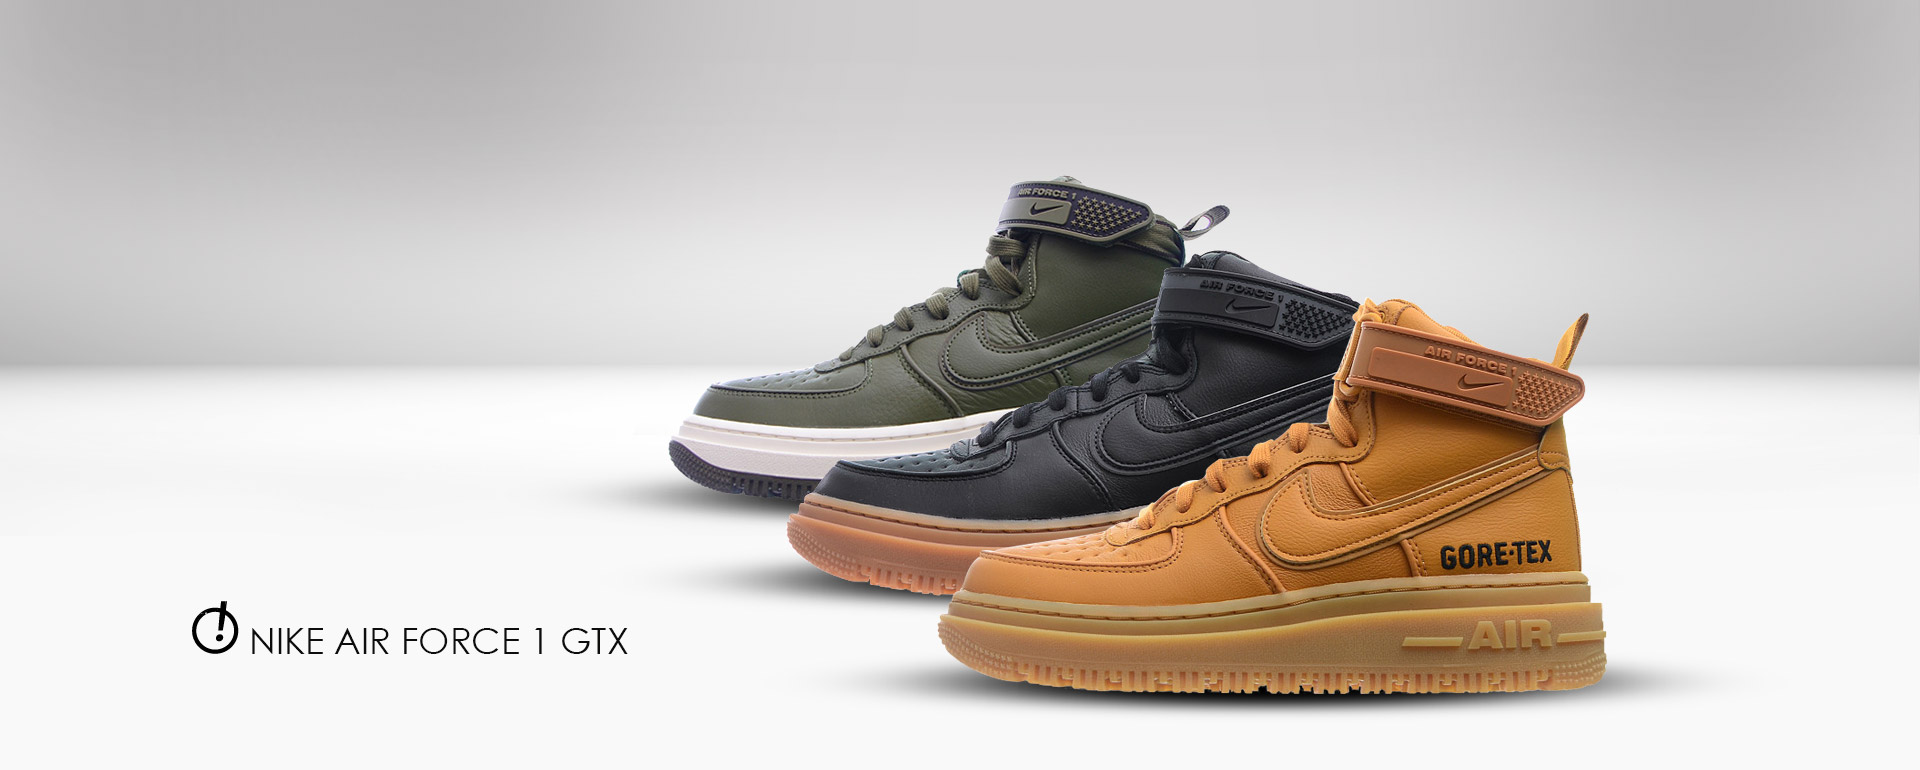 tike slider mockup Nike Air Force 1 GTX